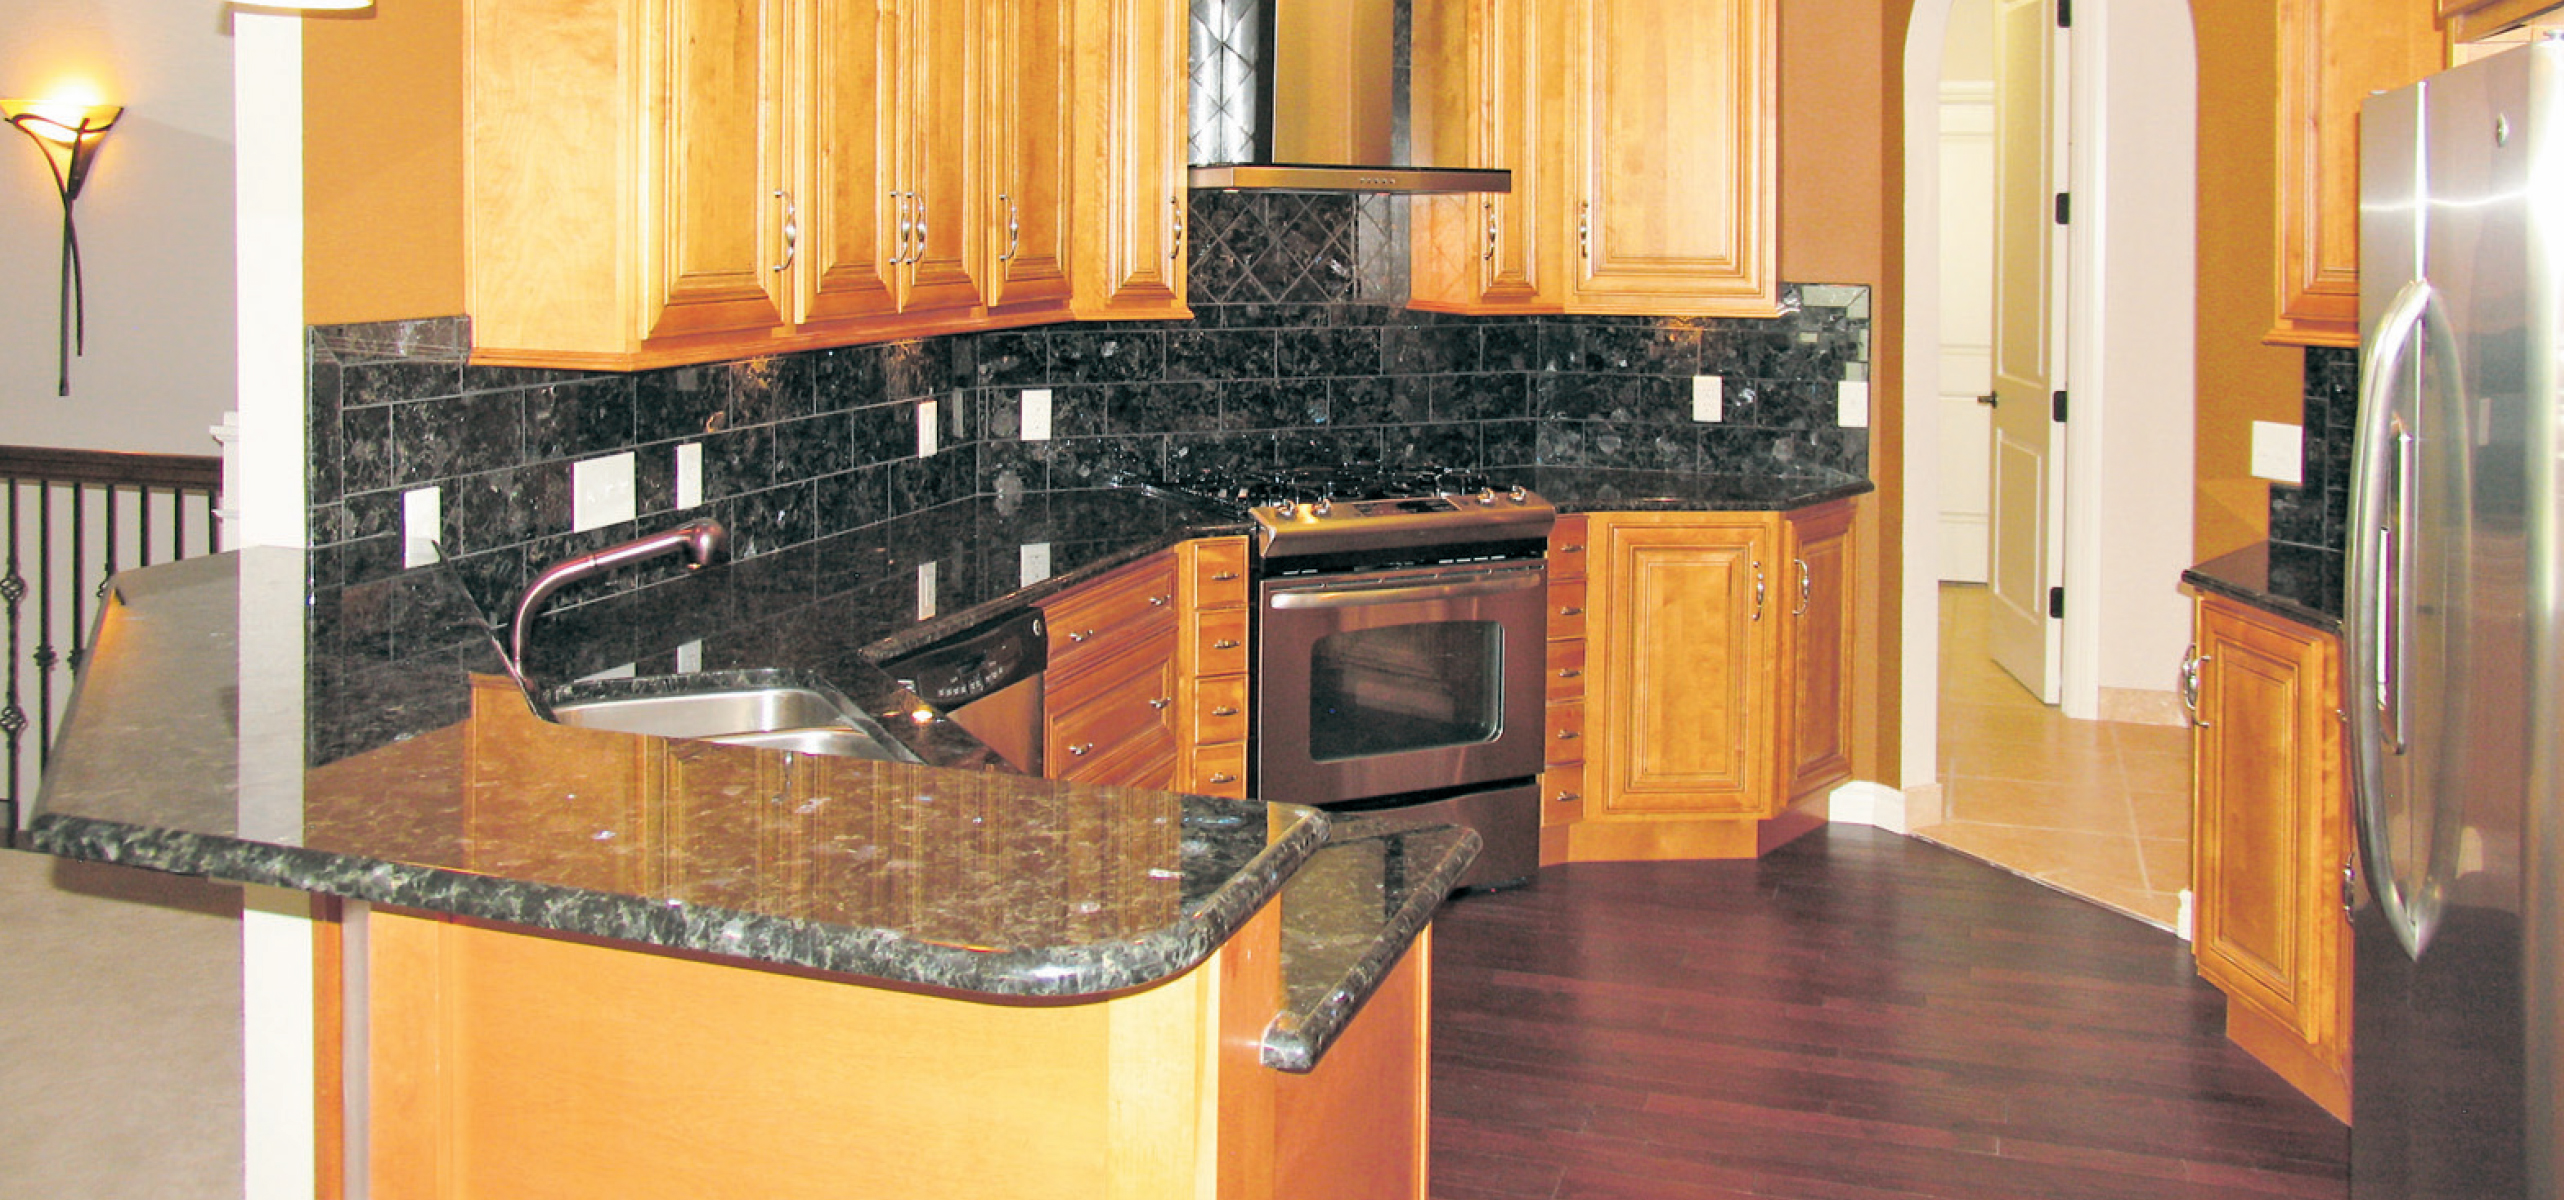 Exquisitely Finished: Home Features Marble, Granite And ... on Maple Cabinets With Black Granite Countertops  id=46415